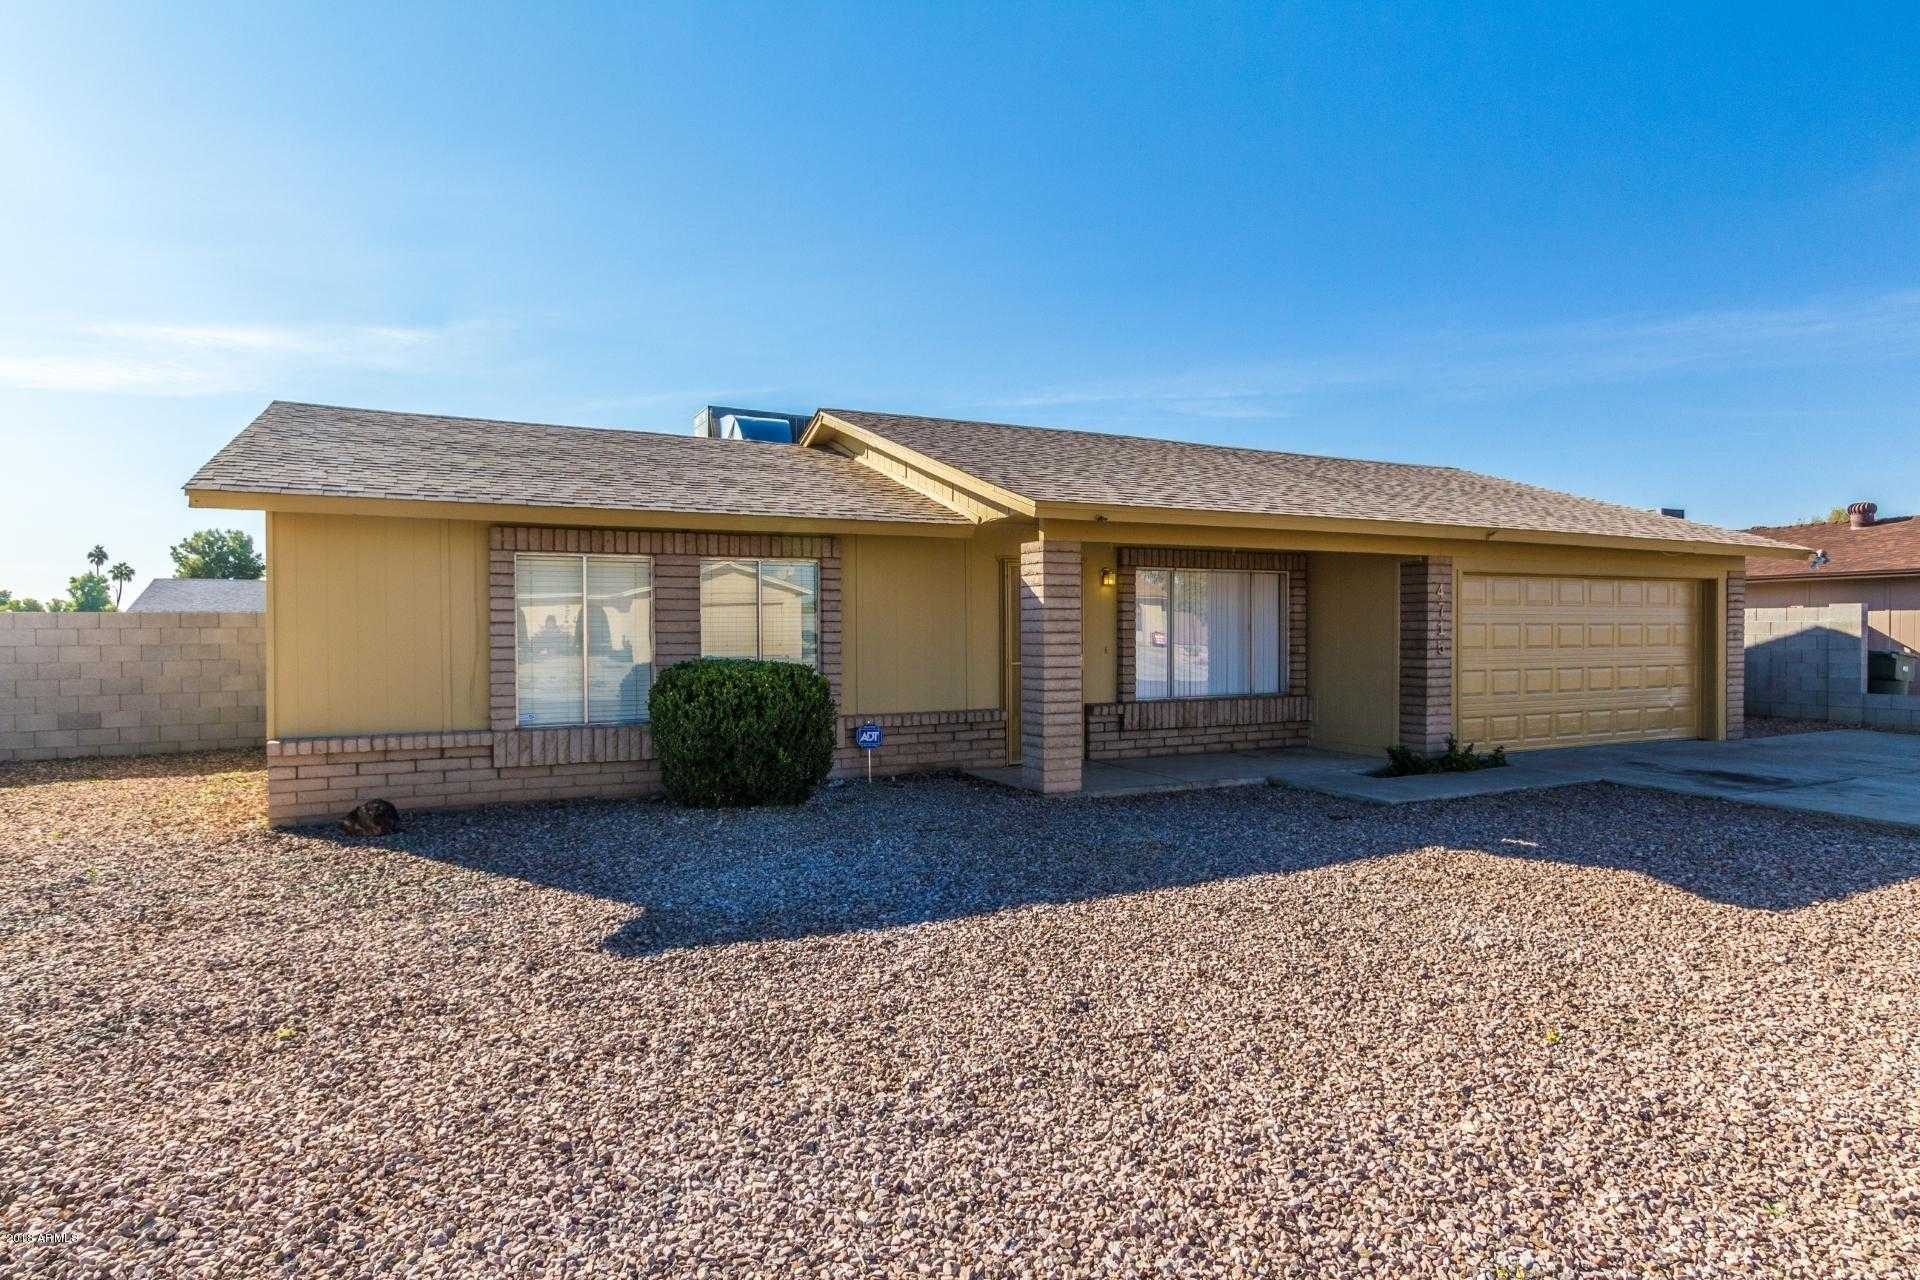 $249,000 - 3Br/2Ba - Home for Sale in Parkview North Lot 1-131, Glendale